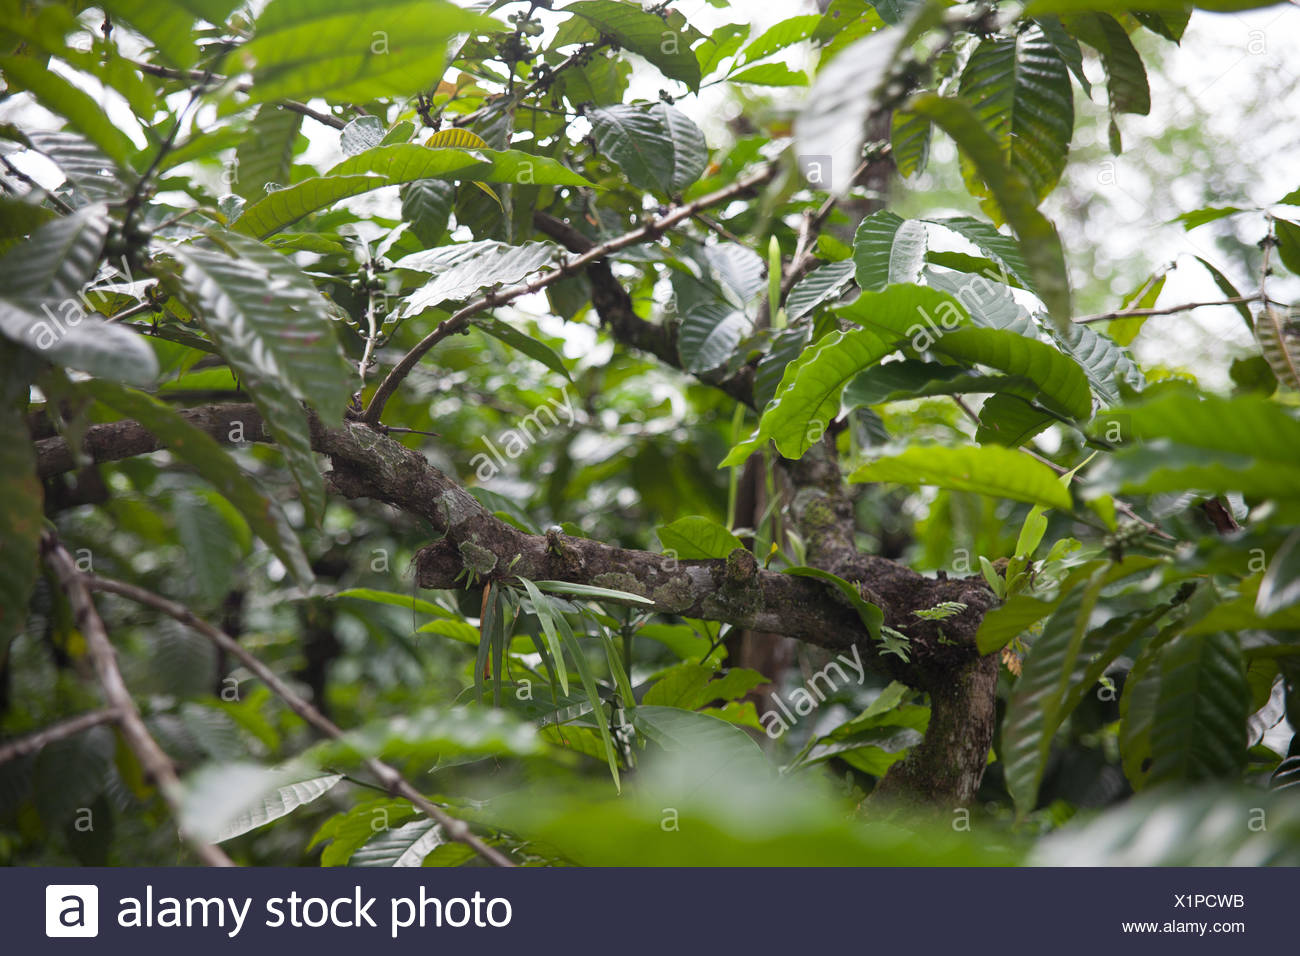 Close-Up Of Plants - Stock Image